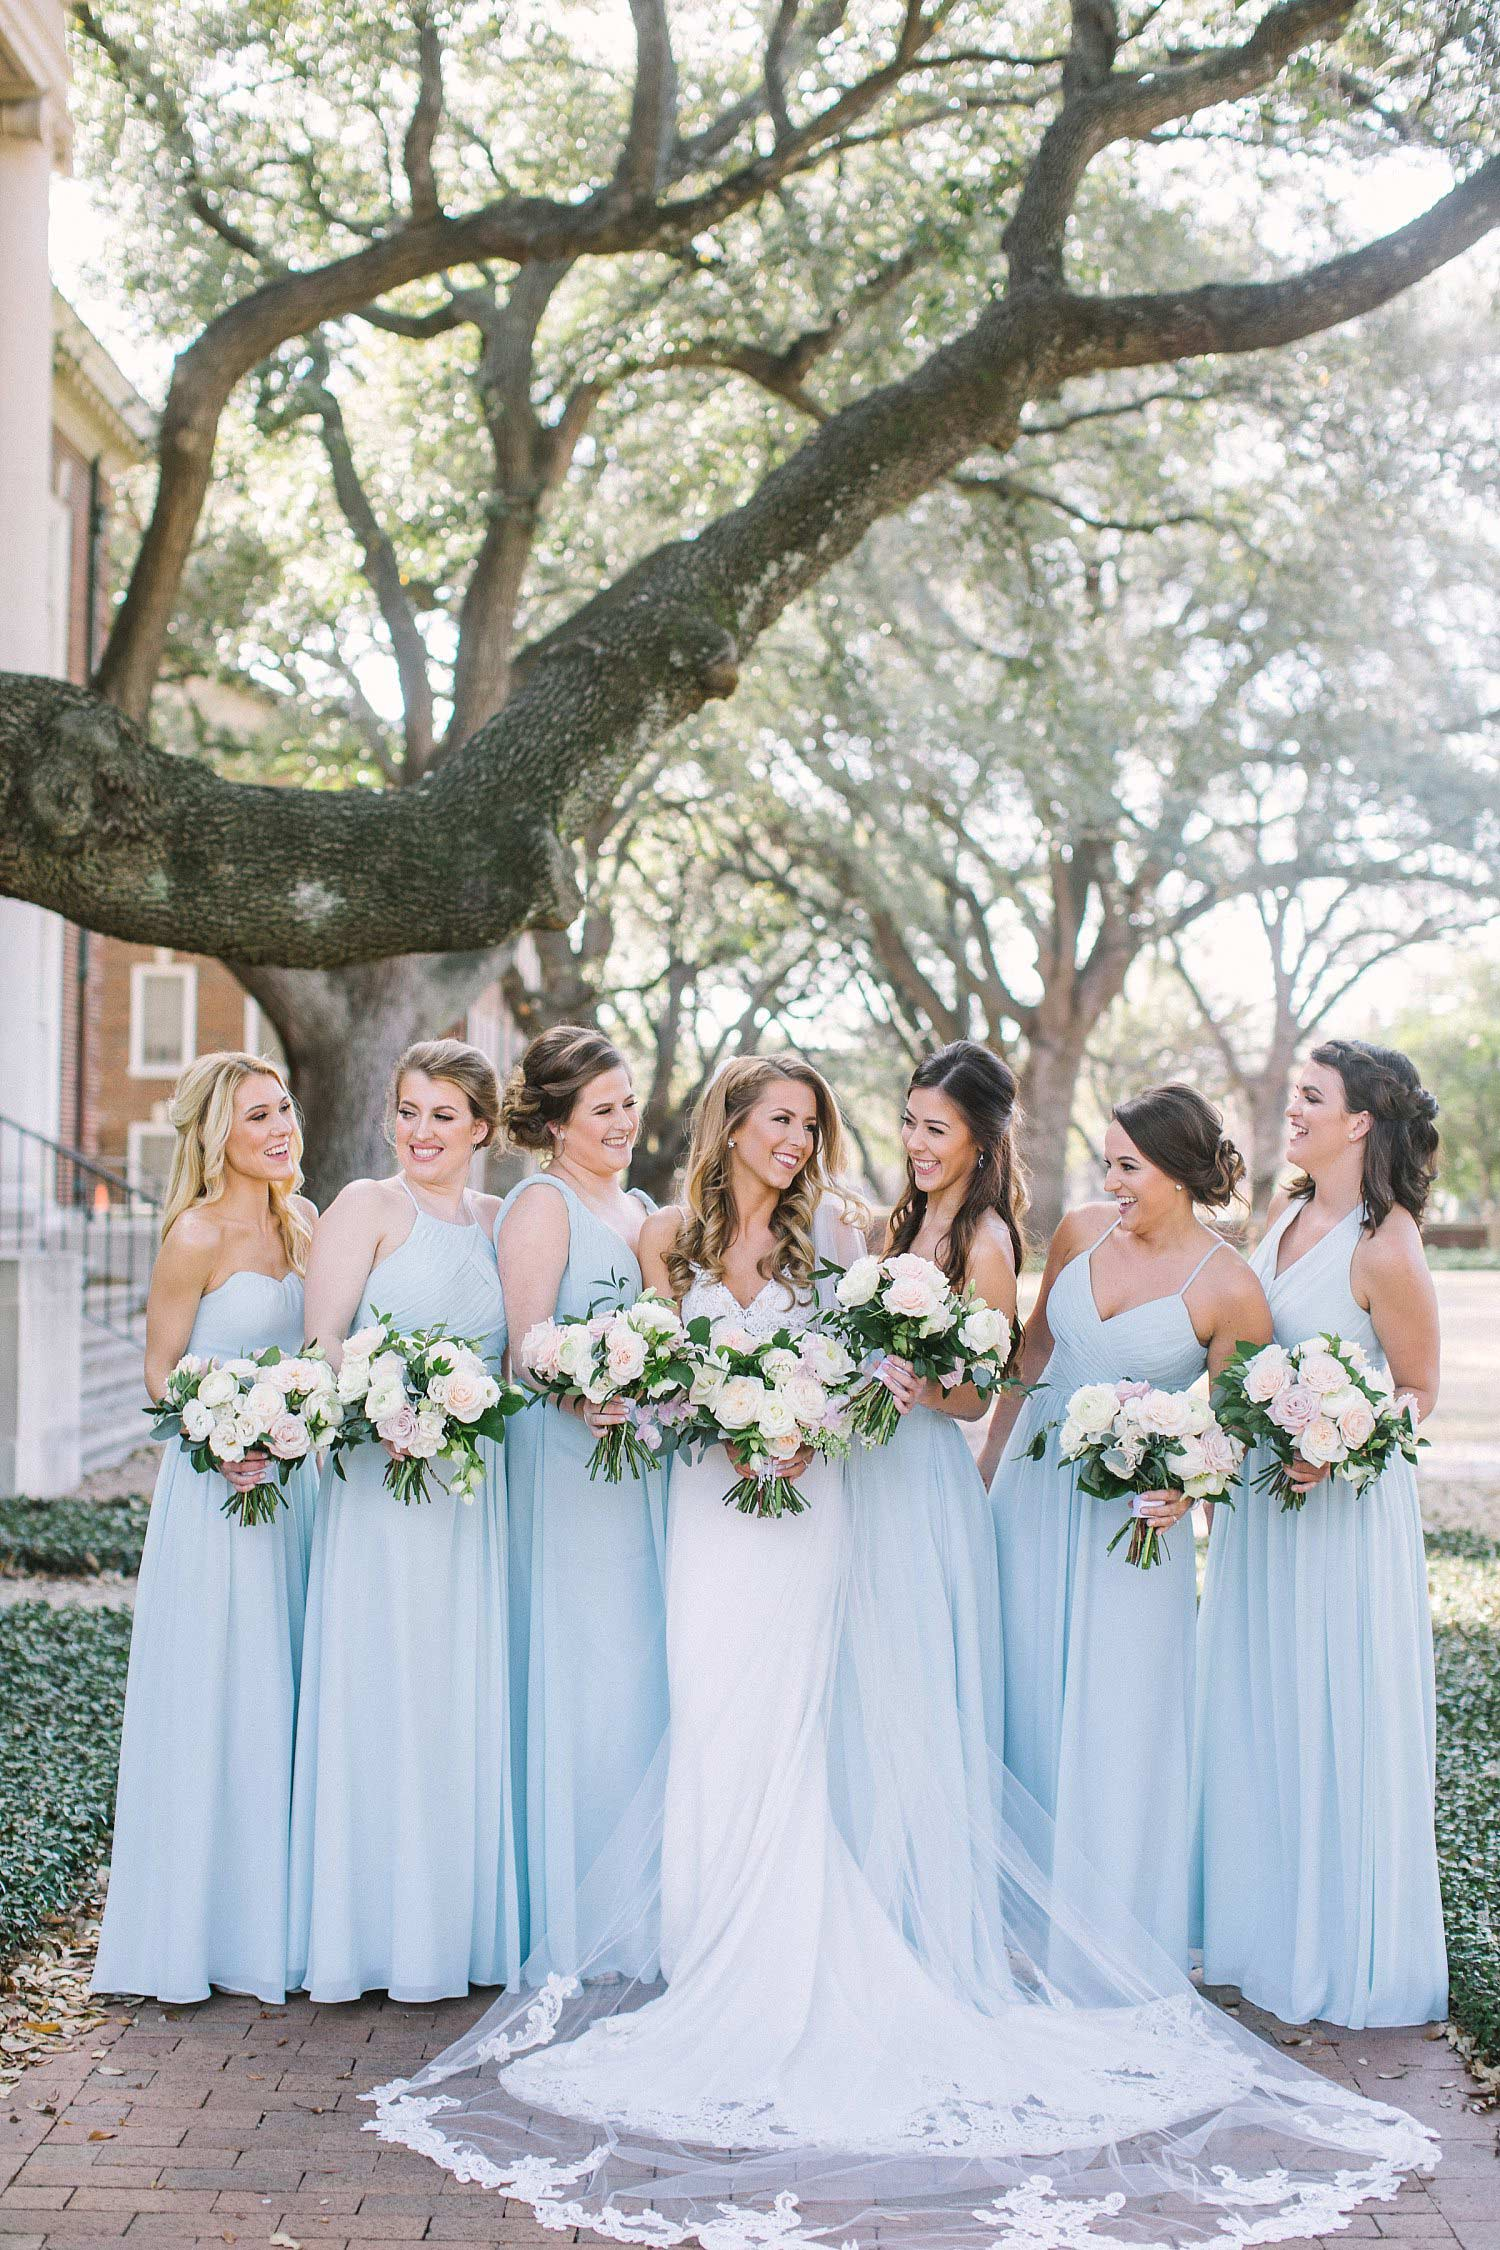 Bridesmaids in dusty blue long dresses